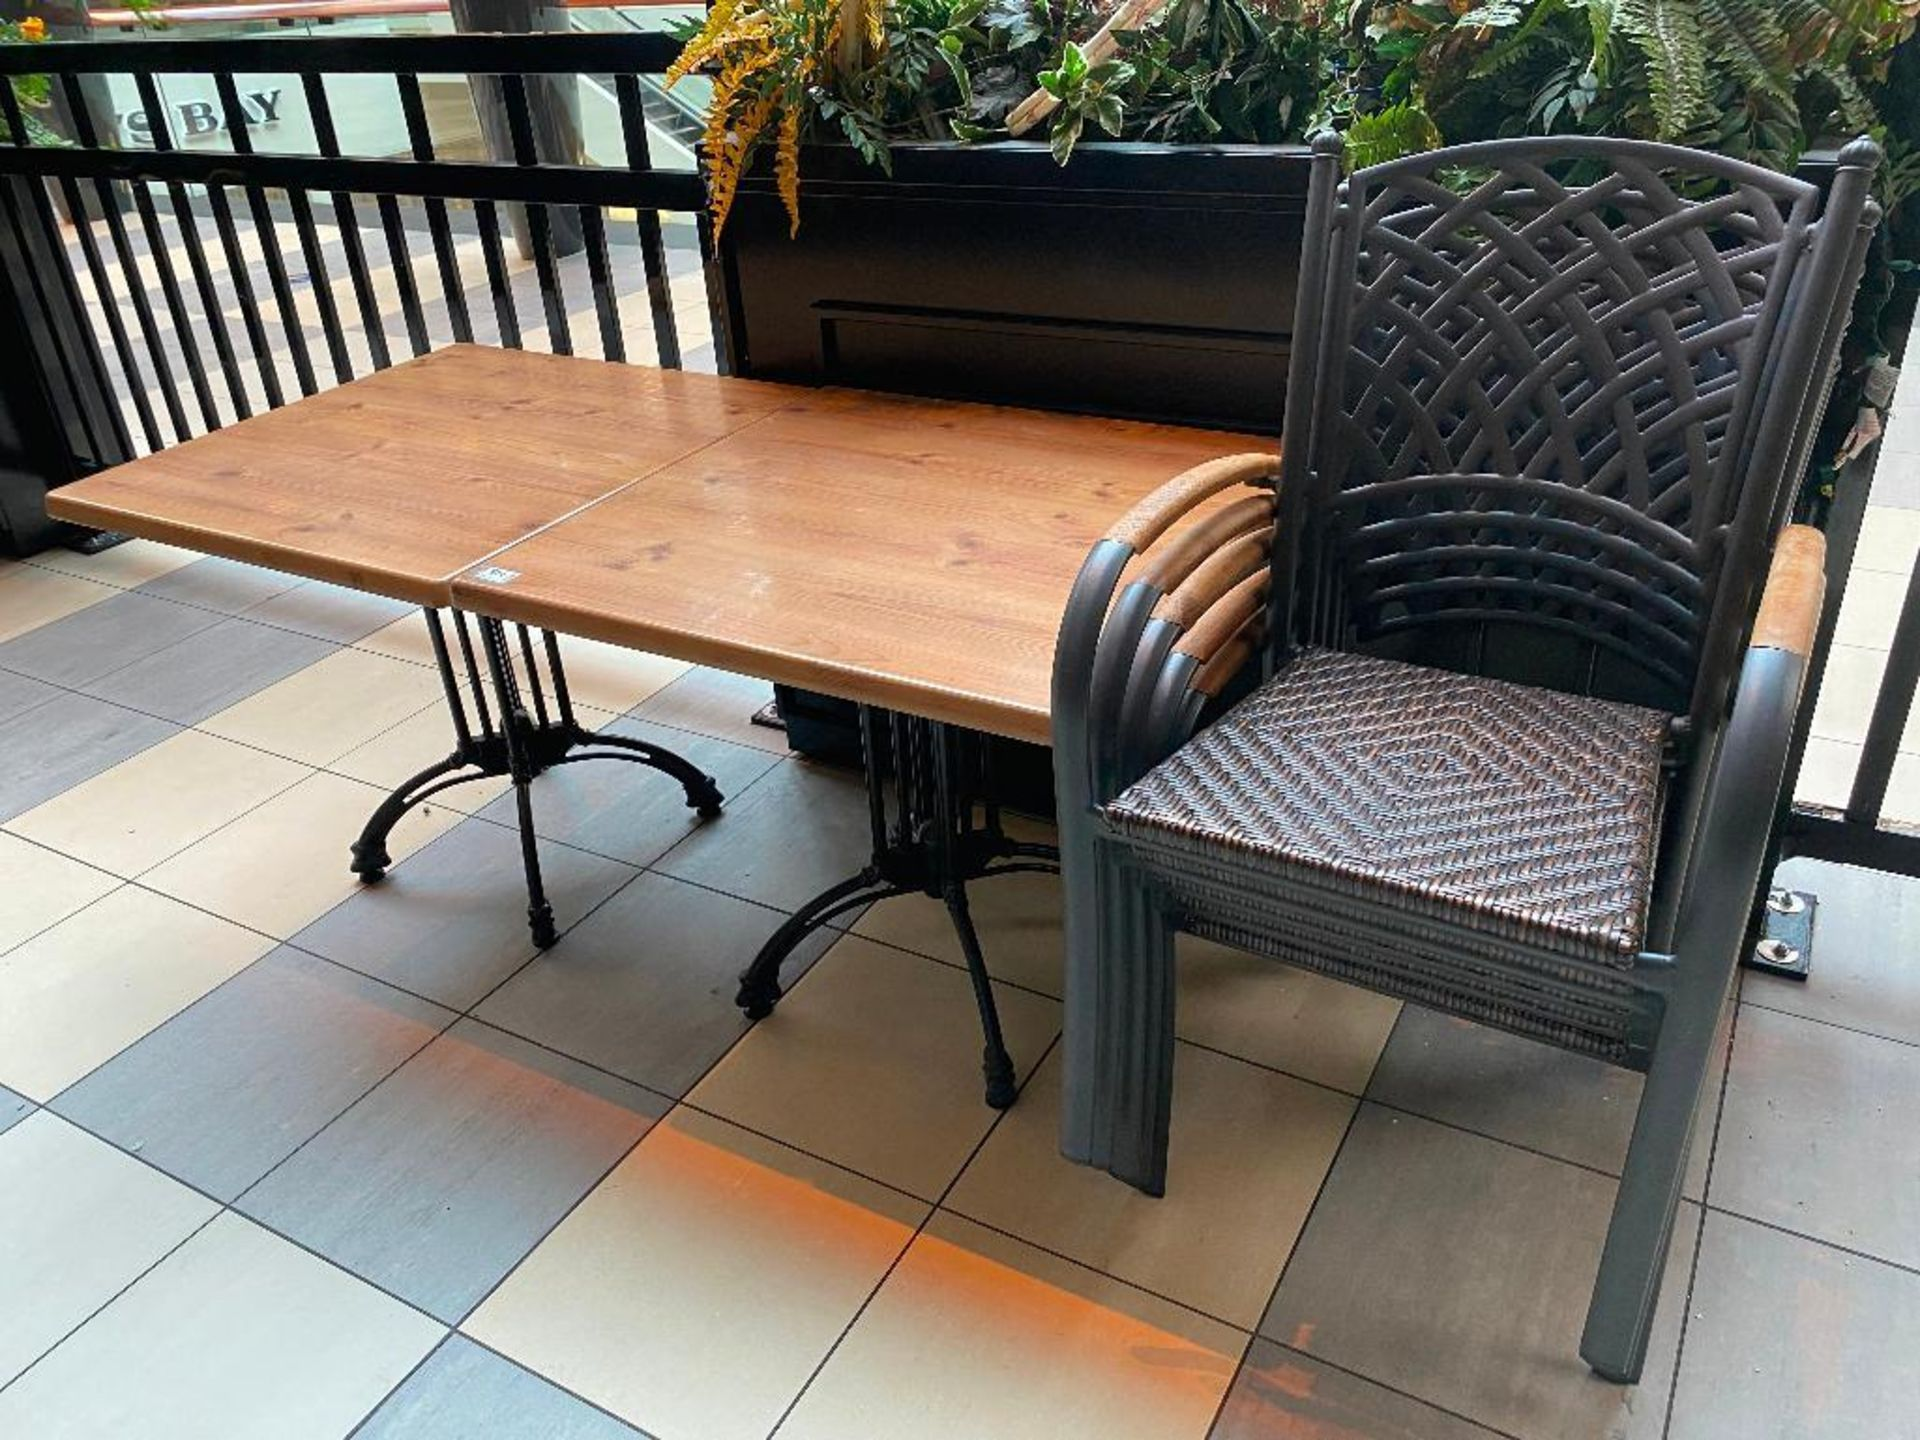 "LOT OF (2) TOPALIT 31"" X 31"" PATIO TABLE WITH 5 CHAIRS - Image 2 of 4"